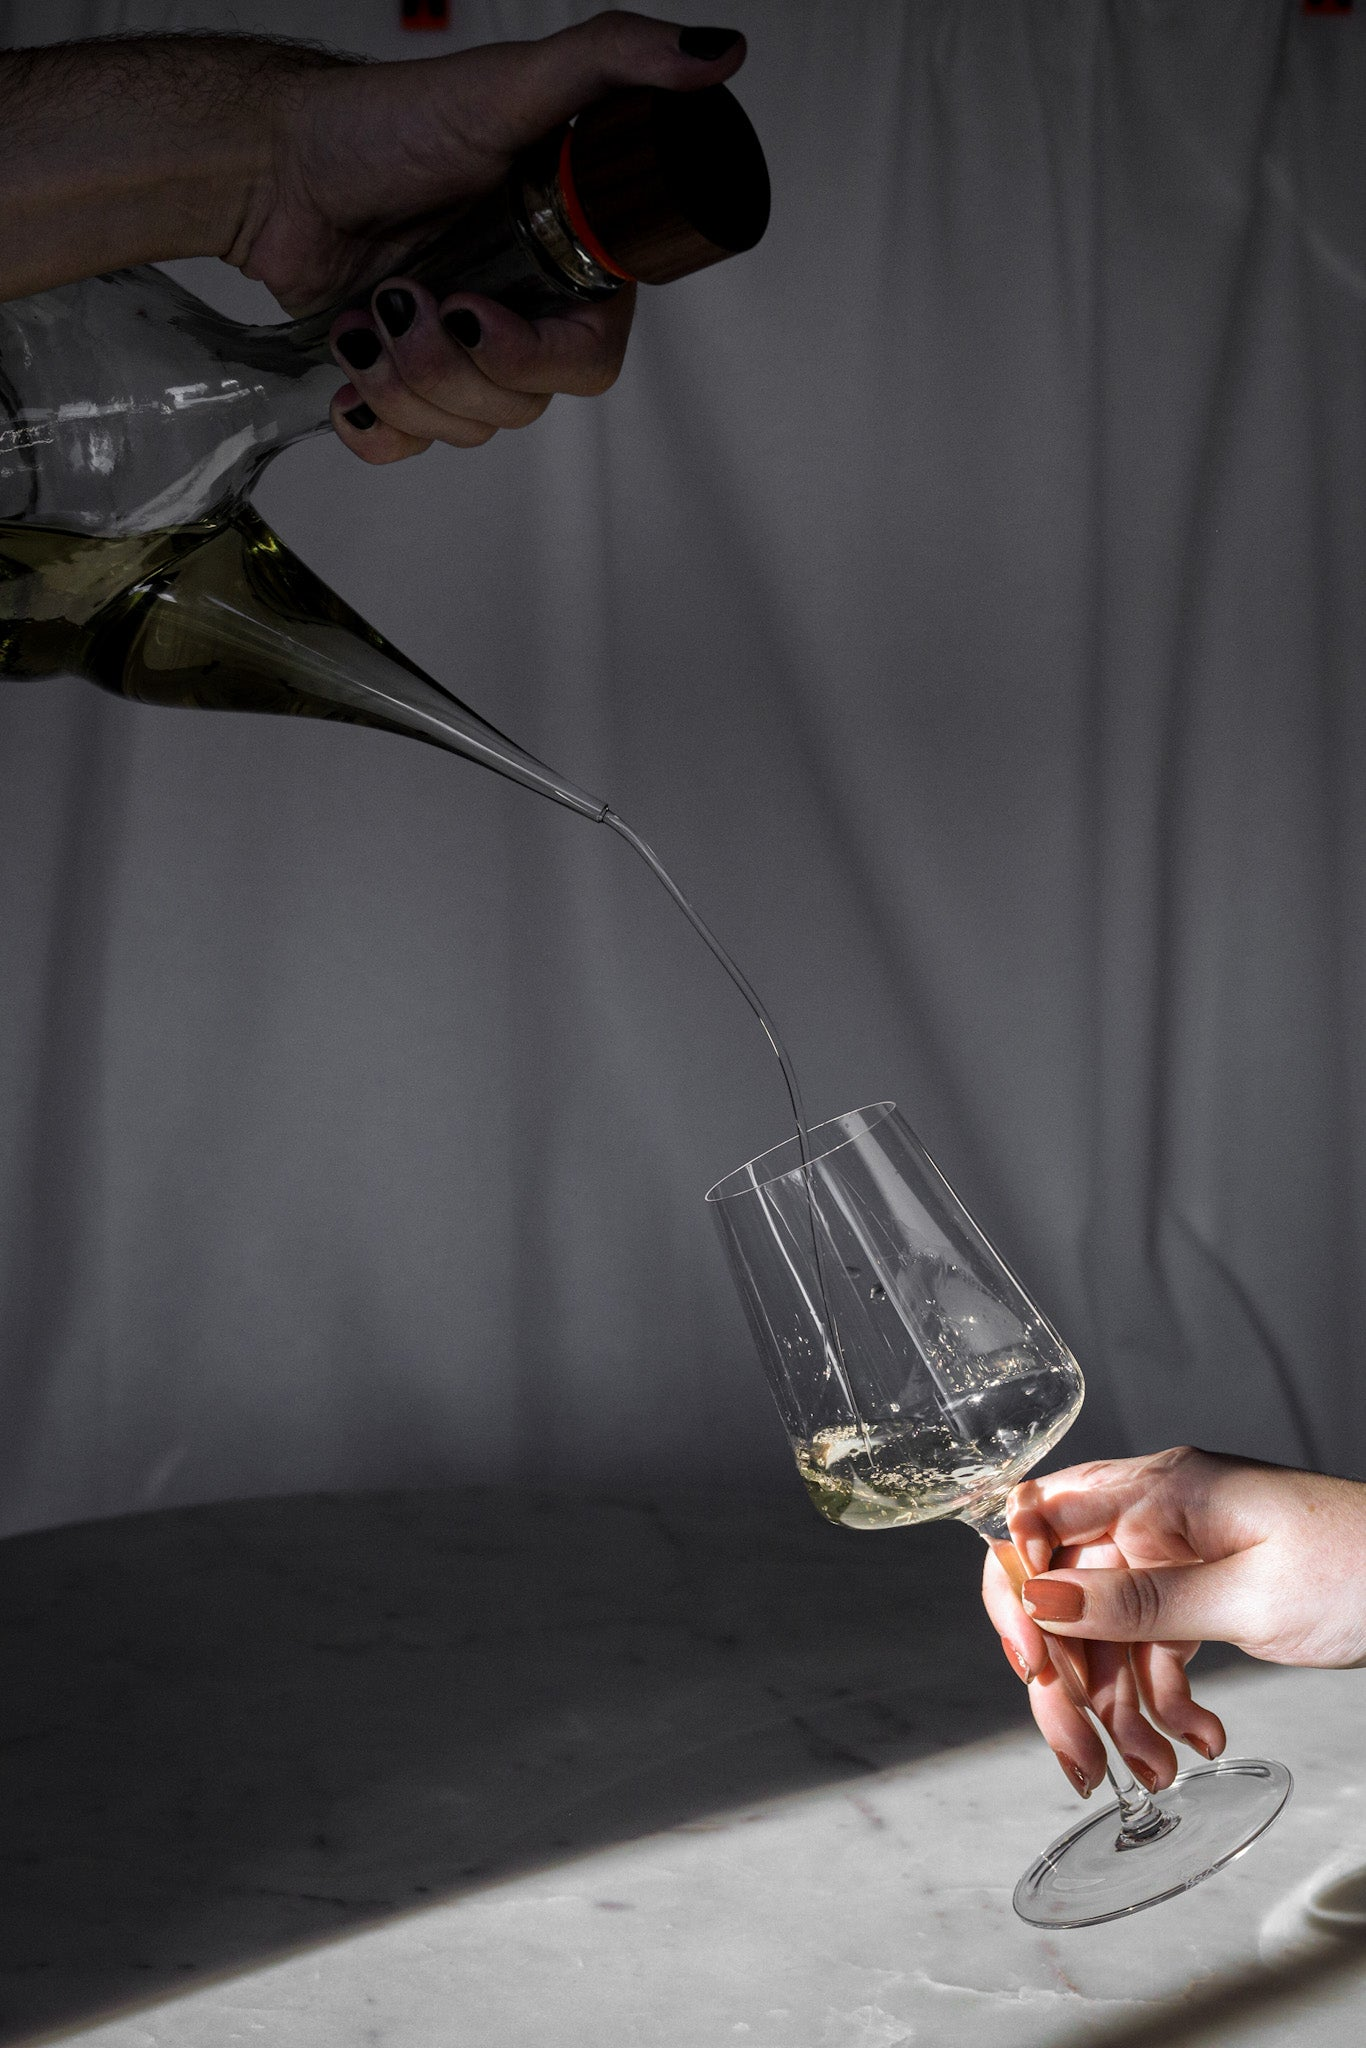 Conserva Porr—n pouring wine in a glass